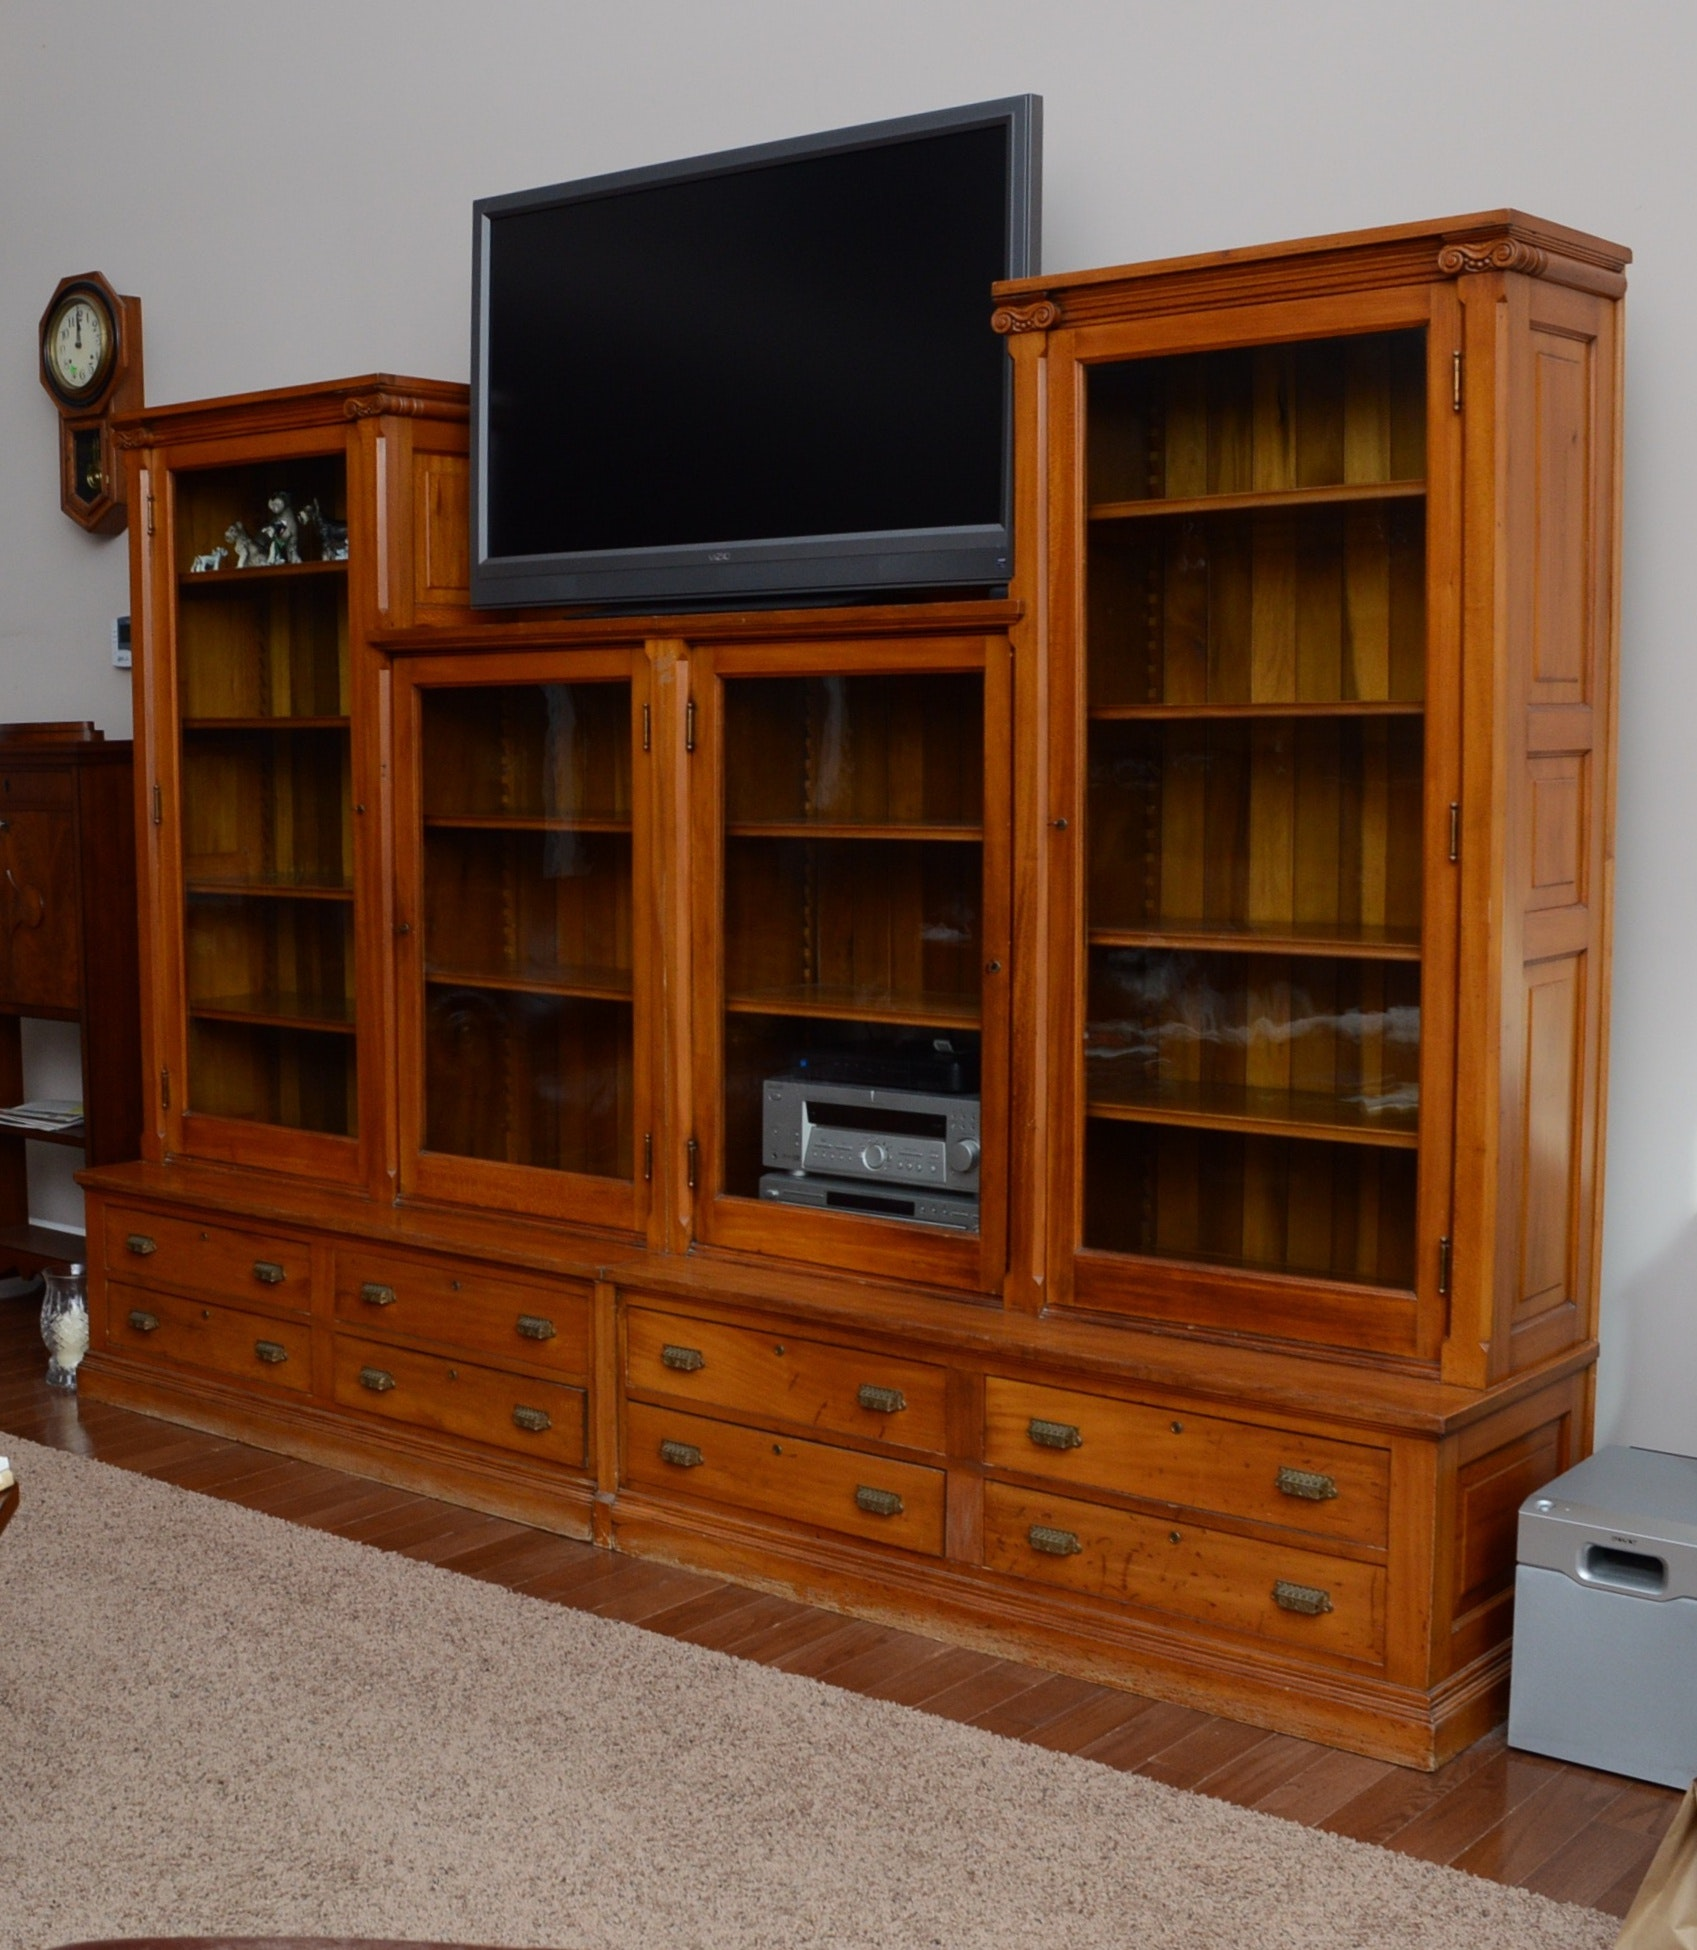 Antique Sycamore Wood Wall Unit